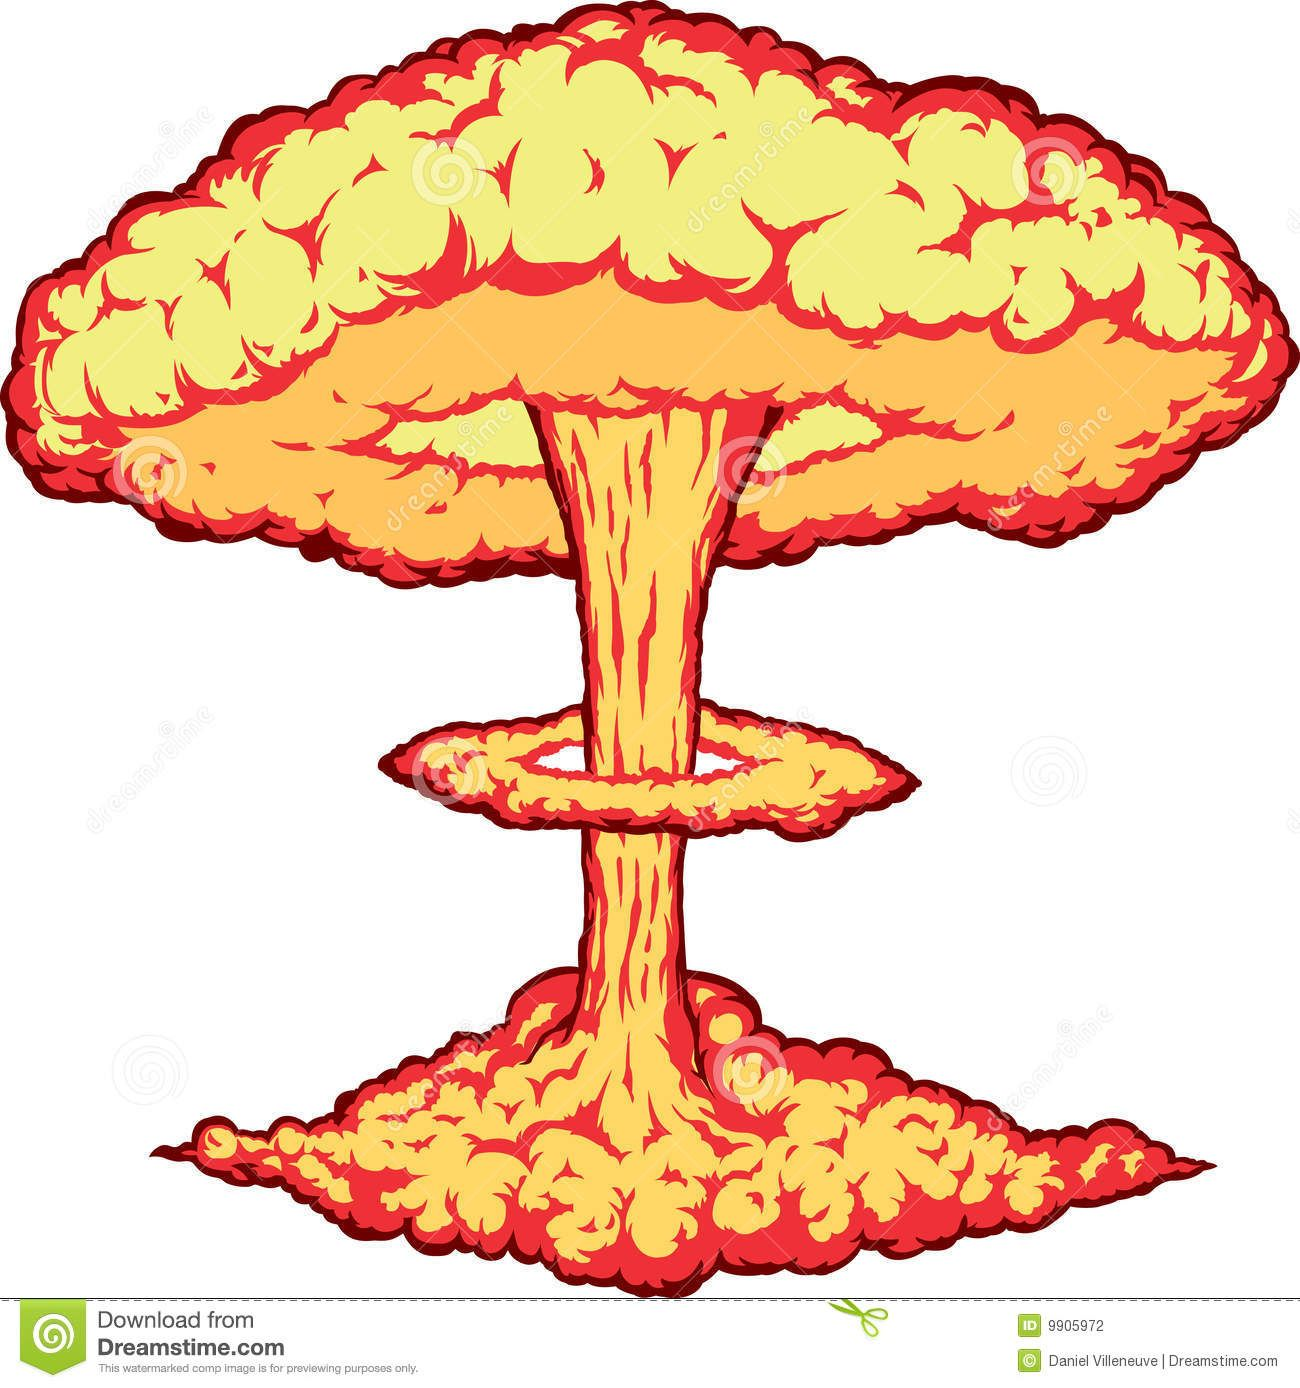 Images For Nuclear Bomb Explosion Drawing Explosion Drawing Cloud Drawing Nuclear Art